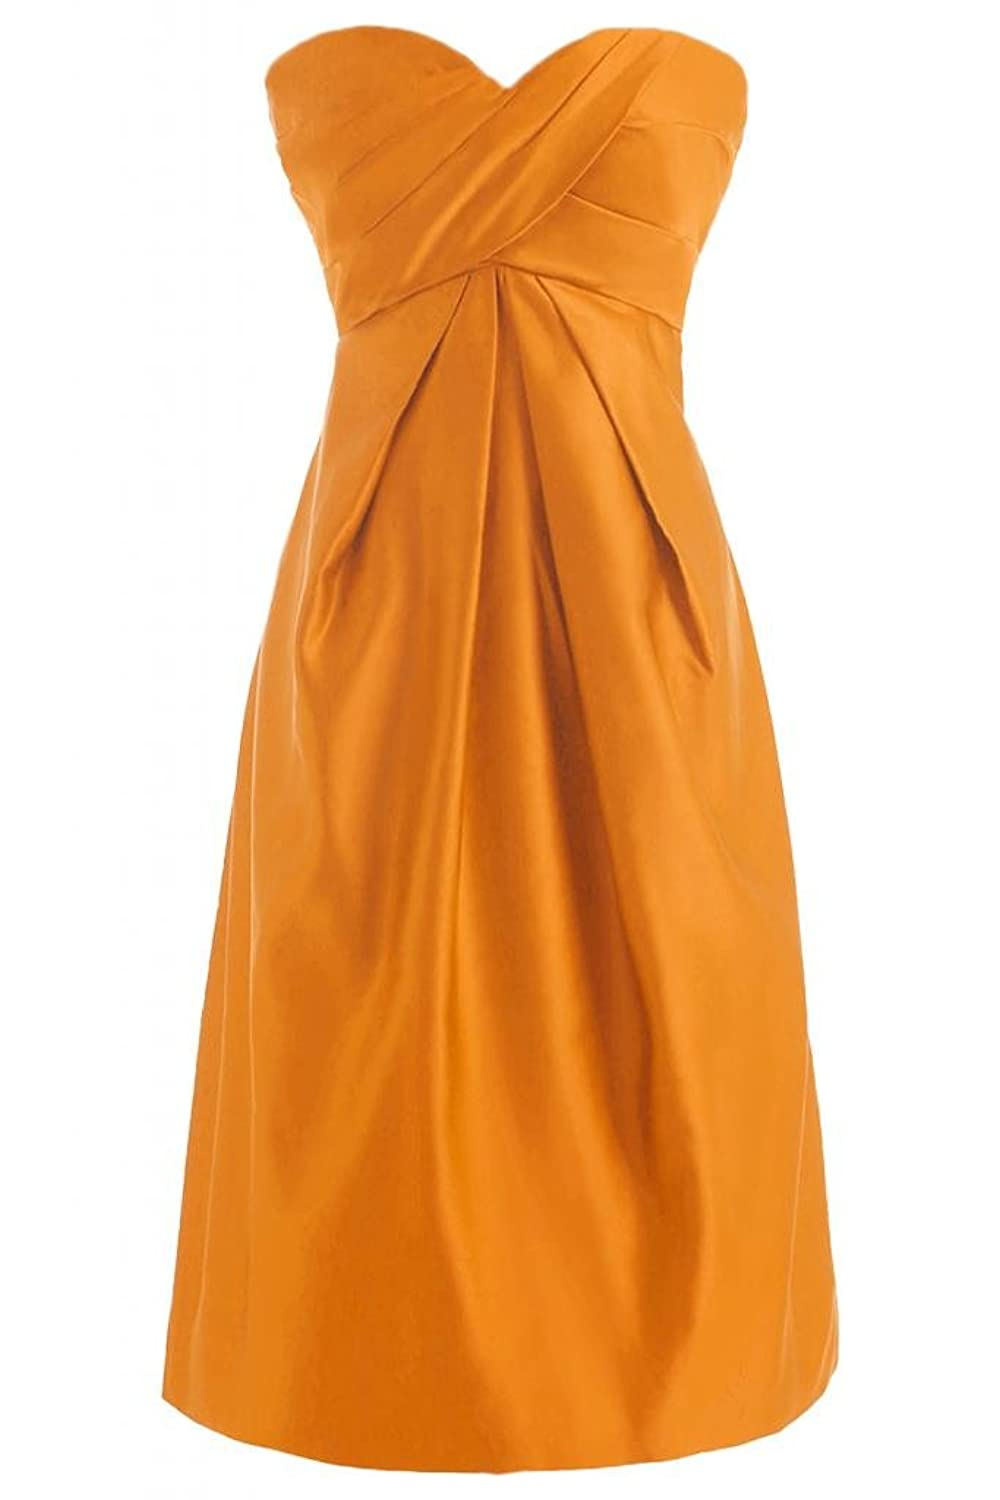 Sunvary A Line Sweetheart Homecoming Dresses Satin Short Cocktail Party Dresses